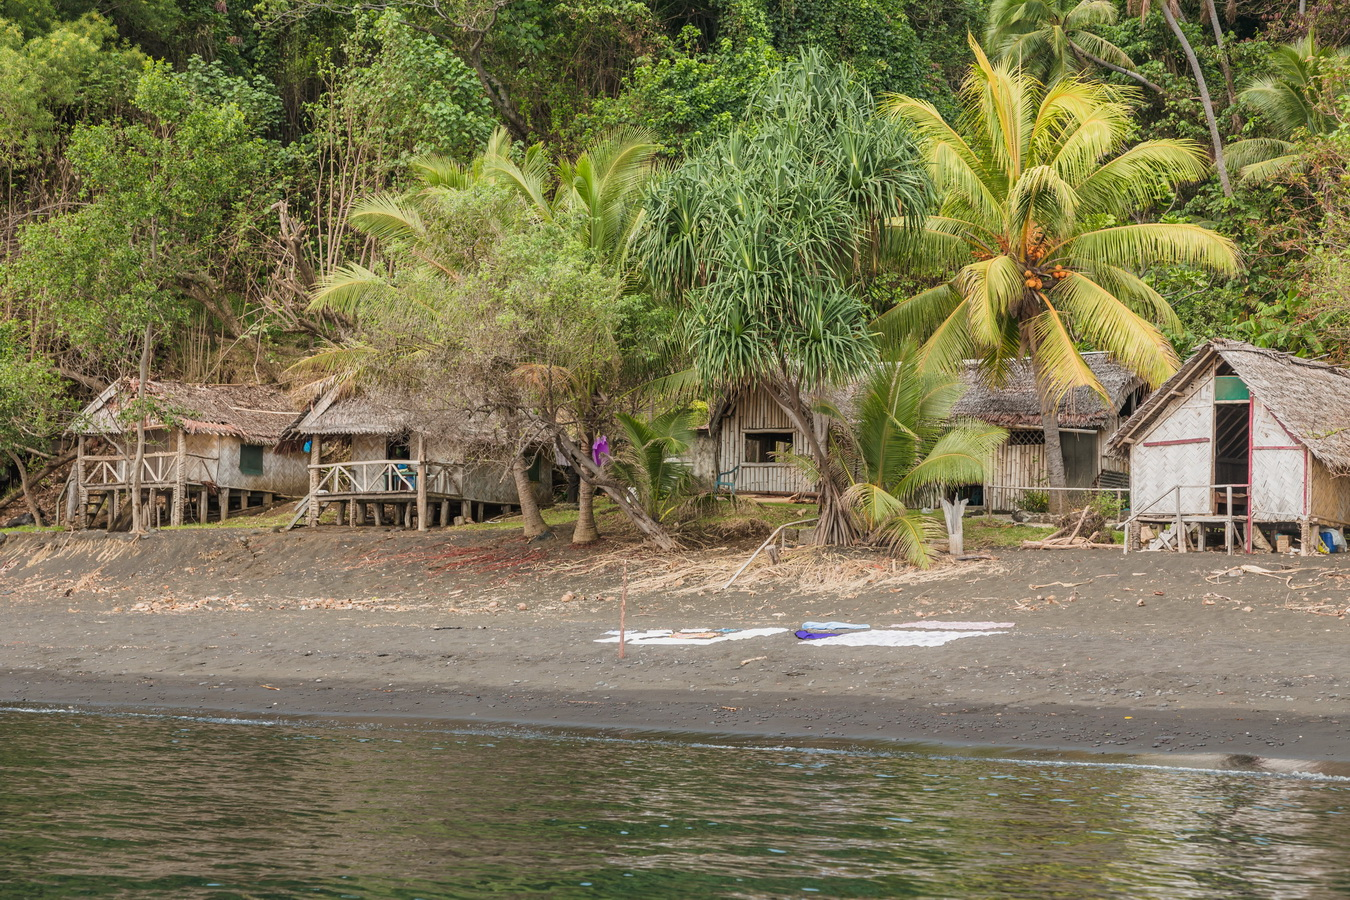 Ranon, beach bungalows,Rom dances,Fanla, north Ambrym, Ambrym, Vanuatu